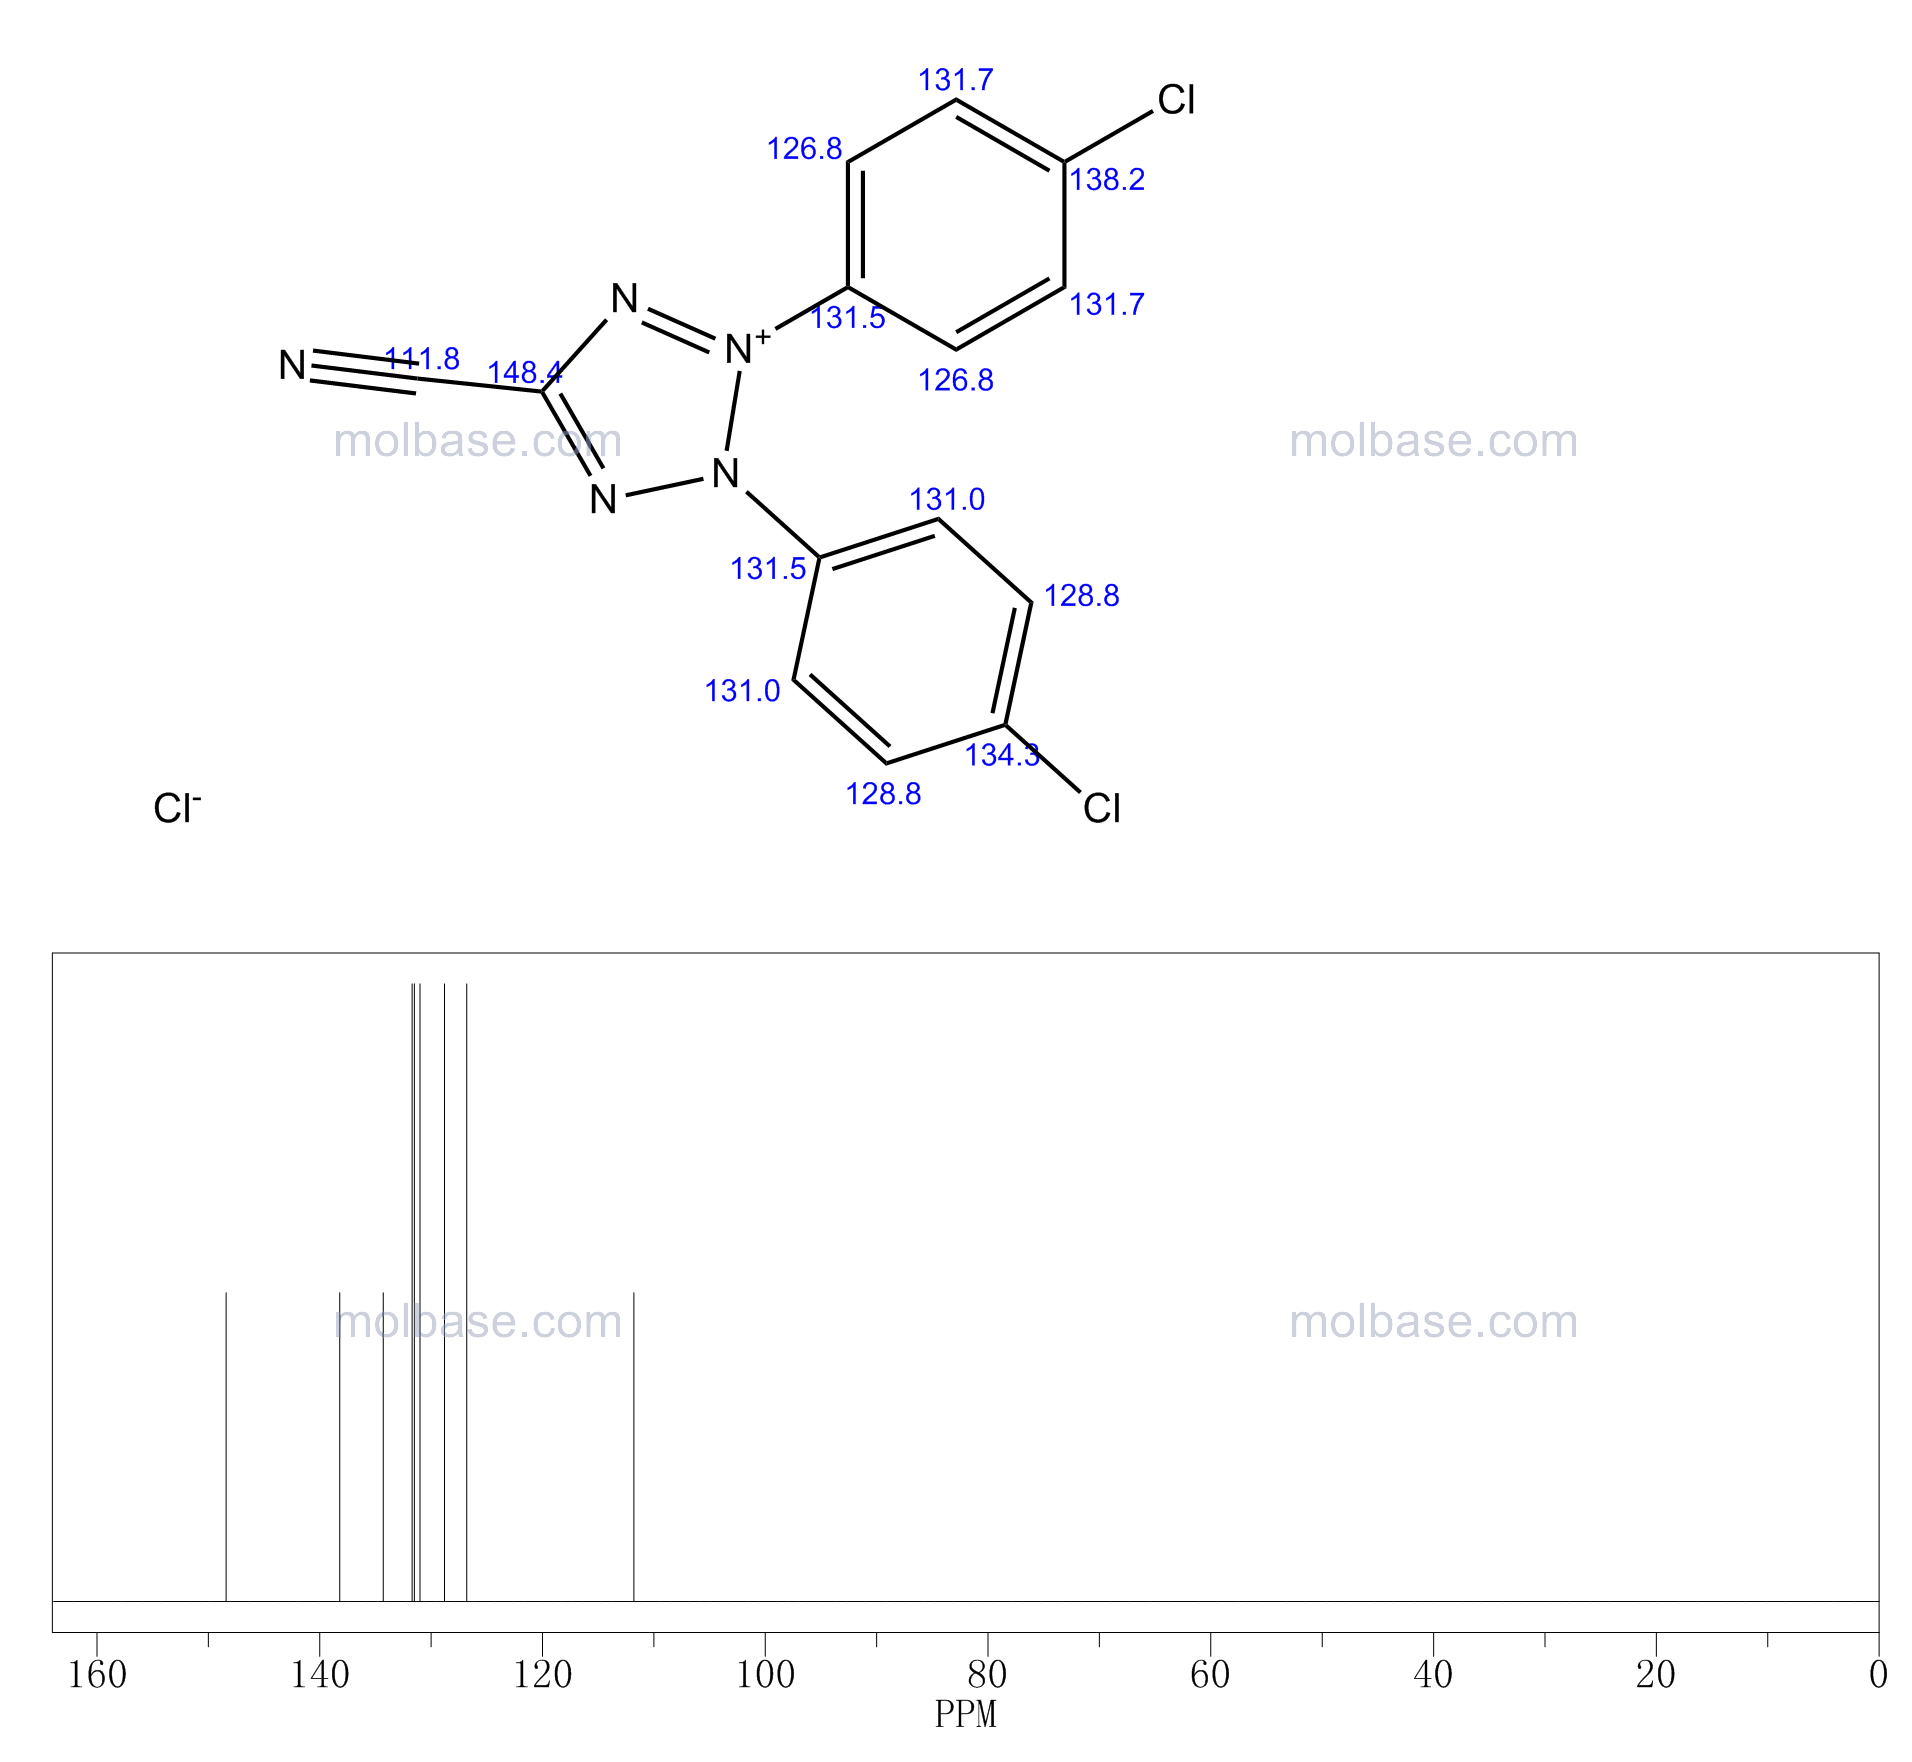 2,3-bis(4-chlorophenyl)tetrazol-2-ium-5-carbonitrile,chloride NMR spectra analysis, Chemical CAS NO. 123431-15-2 NMR spectral analysis, 2,3-bis(4-chlorophenyl)tetrazol-2-ium-5-carbonitrile,chloride C-NMR spectrum